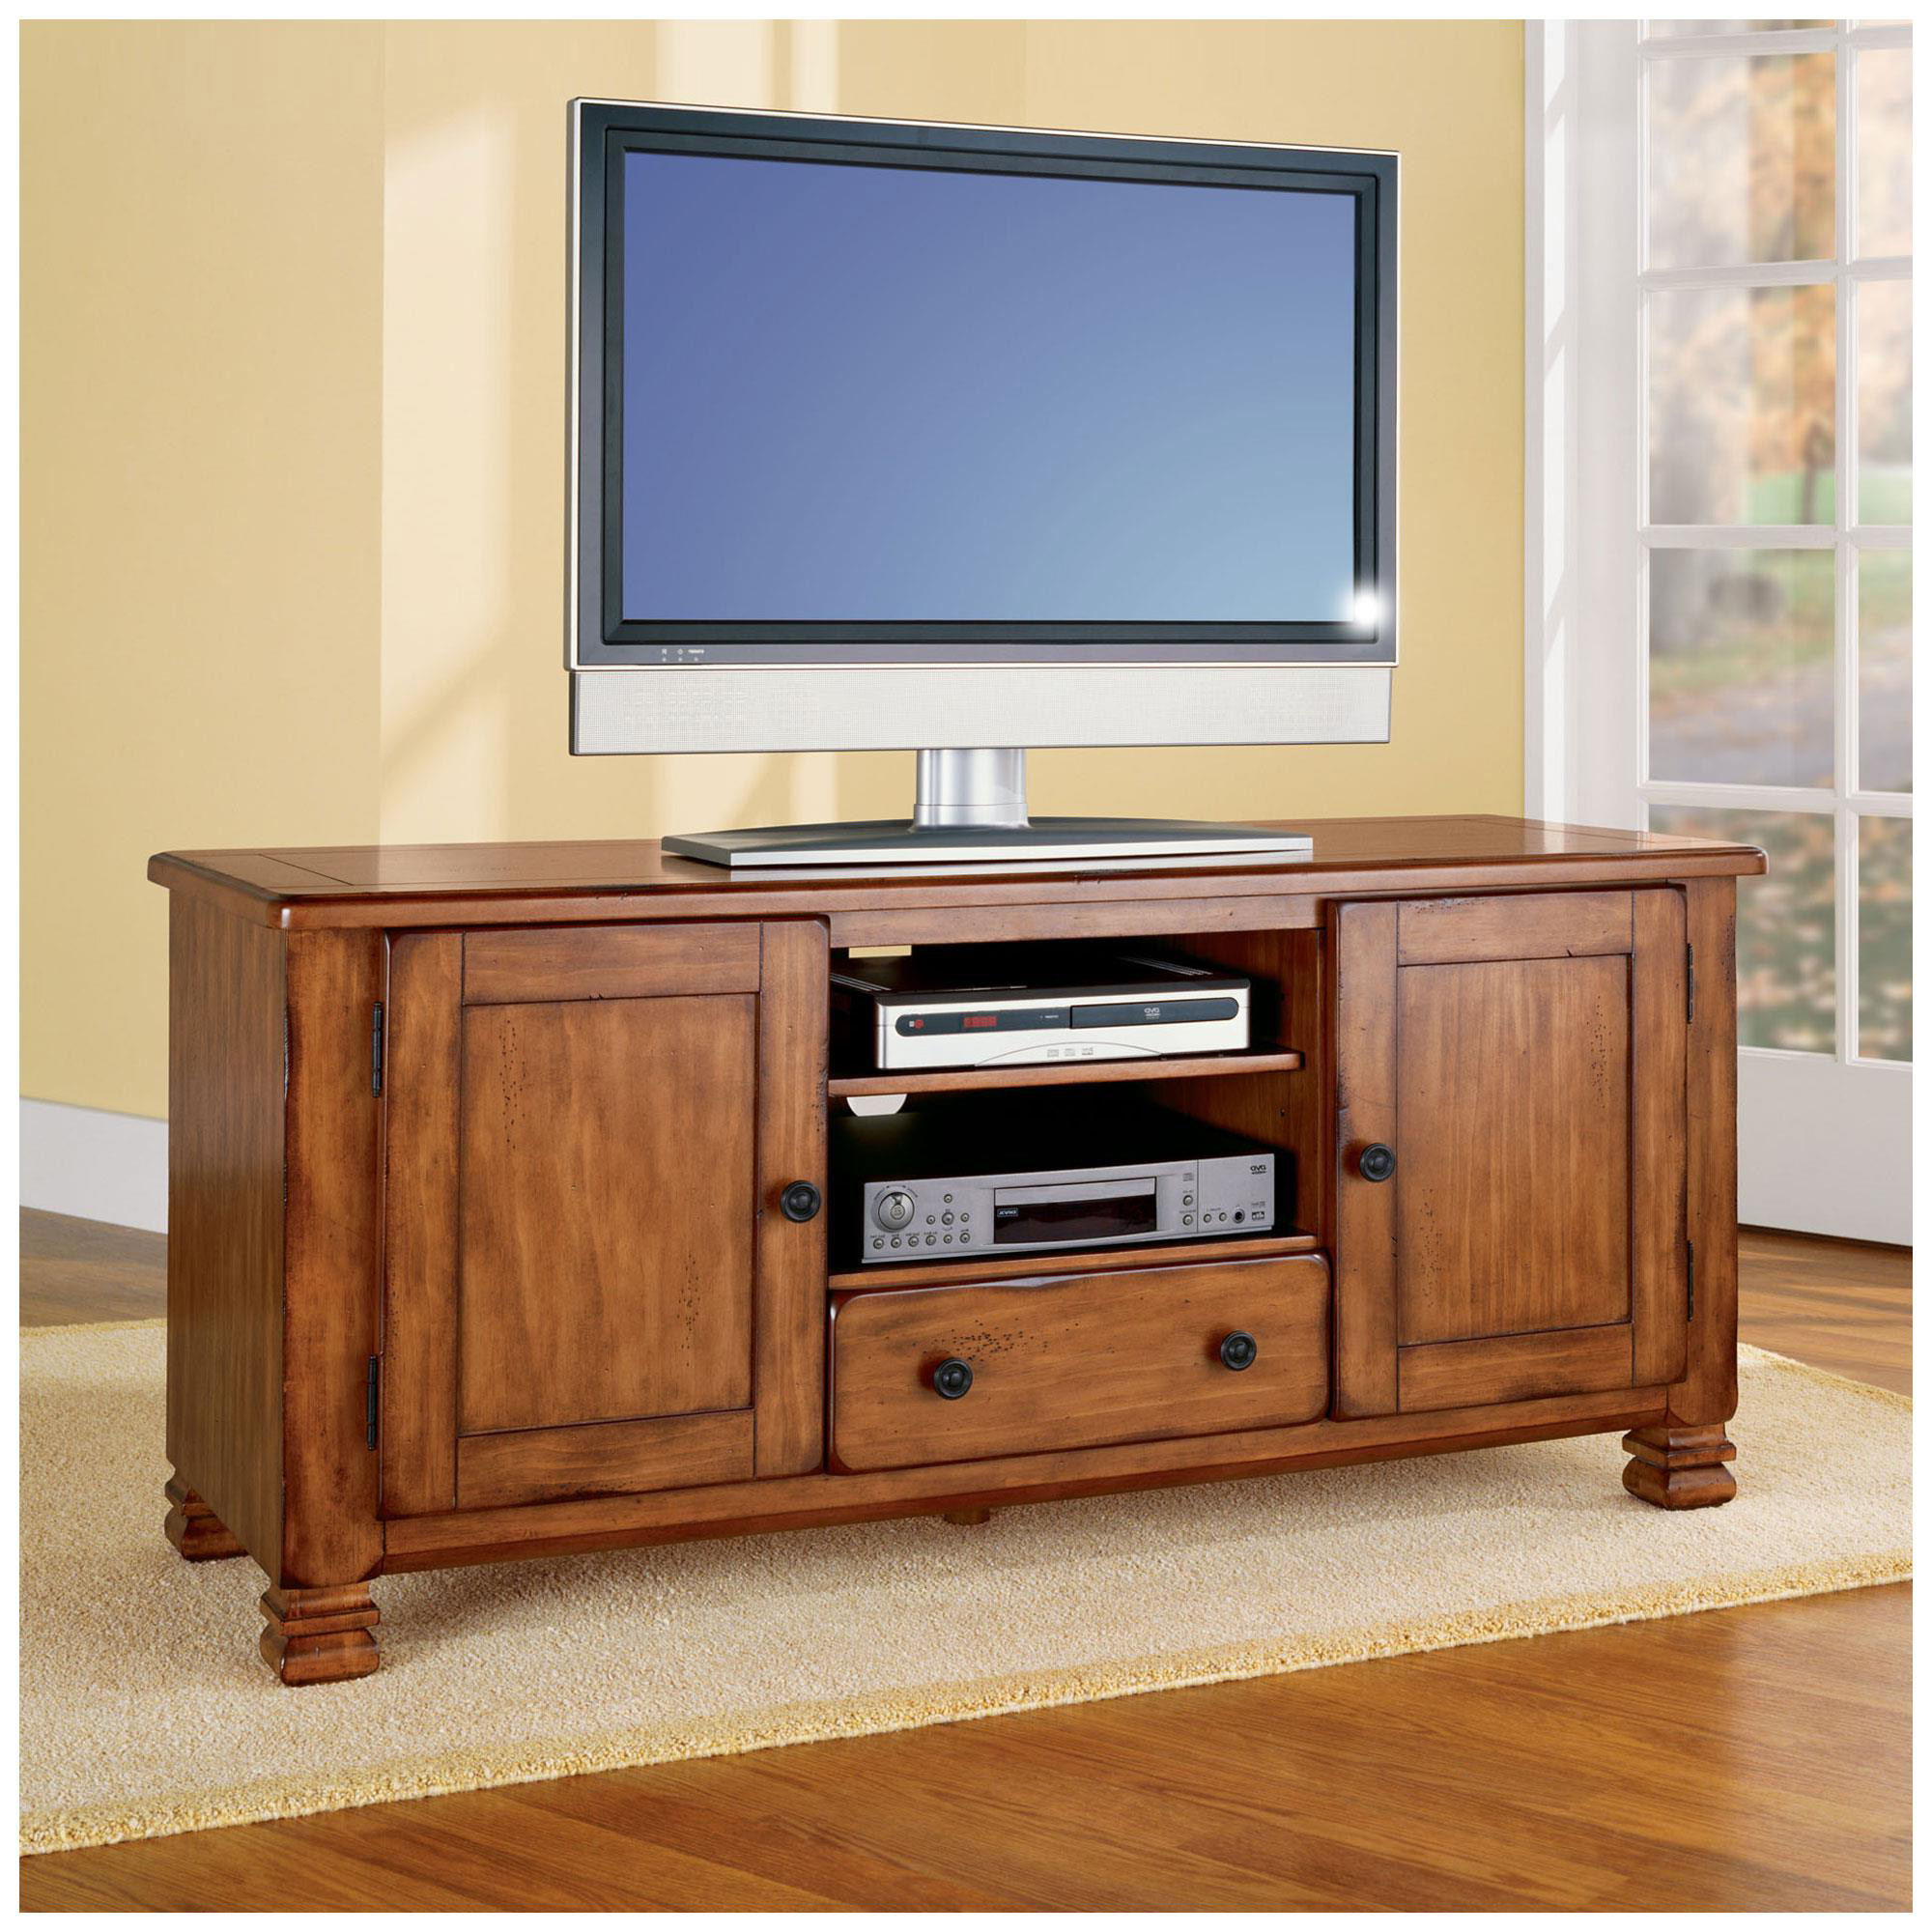 Oak Tv Stand Walmart Solid Wood Stands For Flat Screens Light Regarding Widely Used Oak Tv Cabinets For Flat Screens With Doors (View 6 of 20)